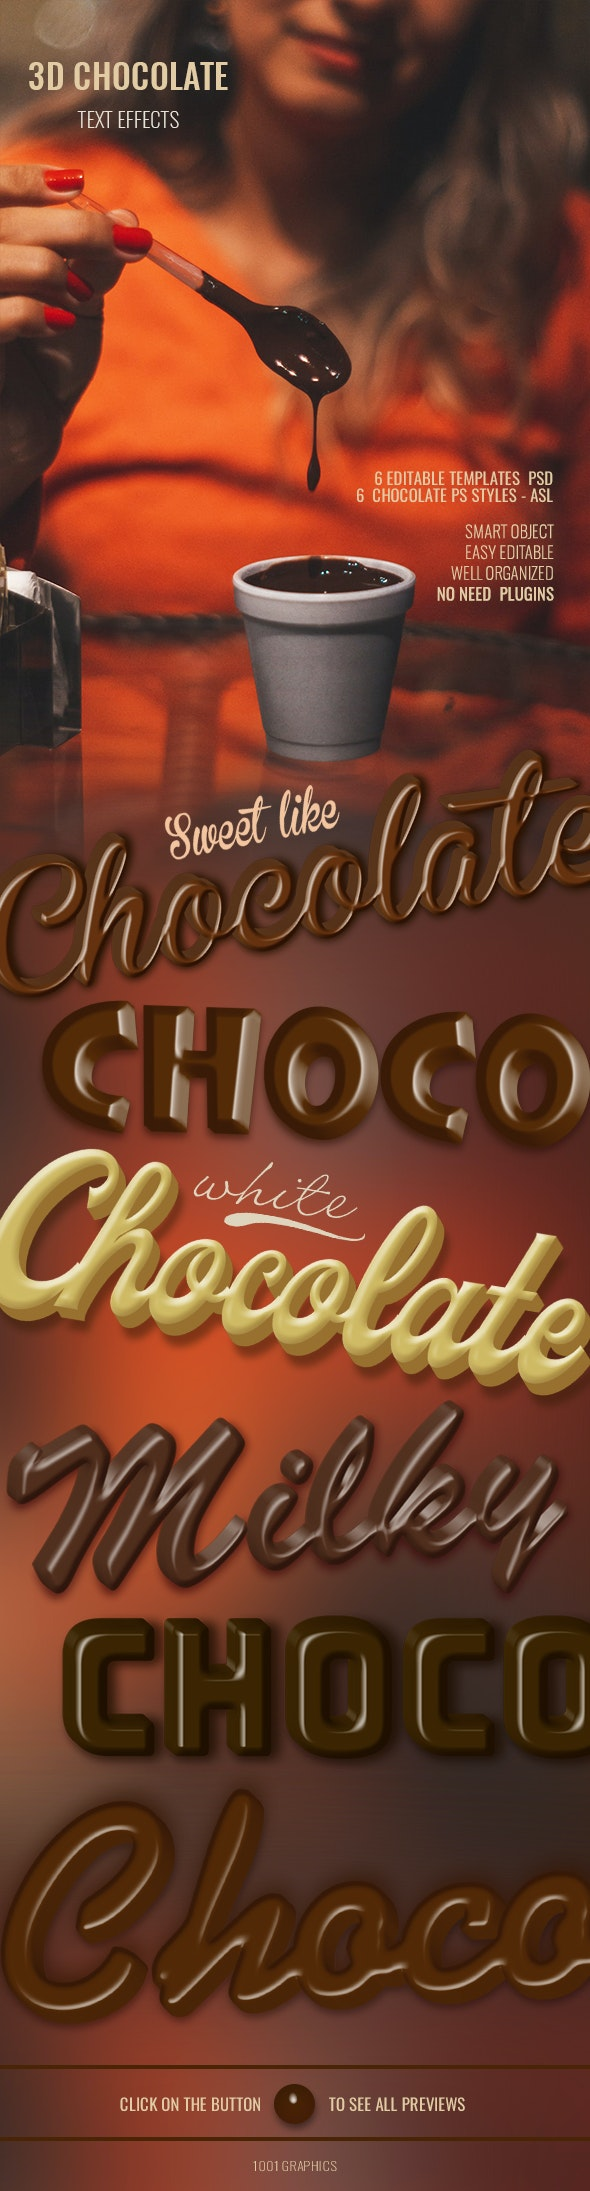 6 Realistic Chocolate - 3D Text Effects PSD Templates - Text Effects Actions